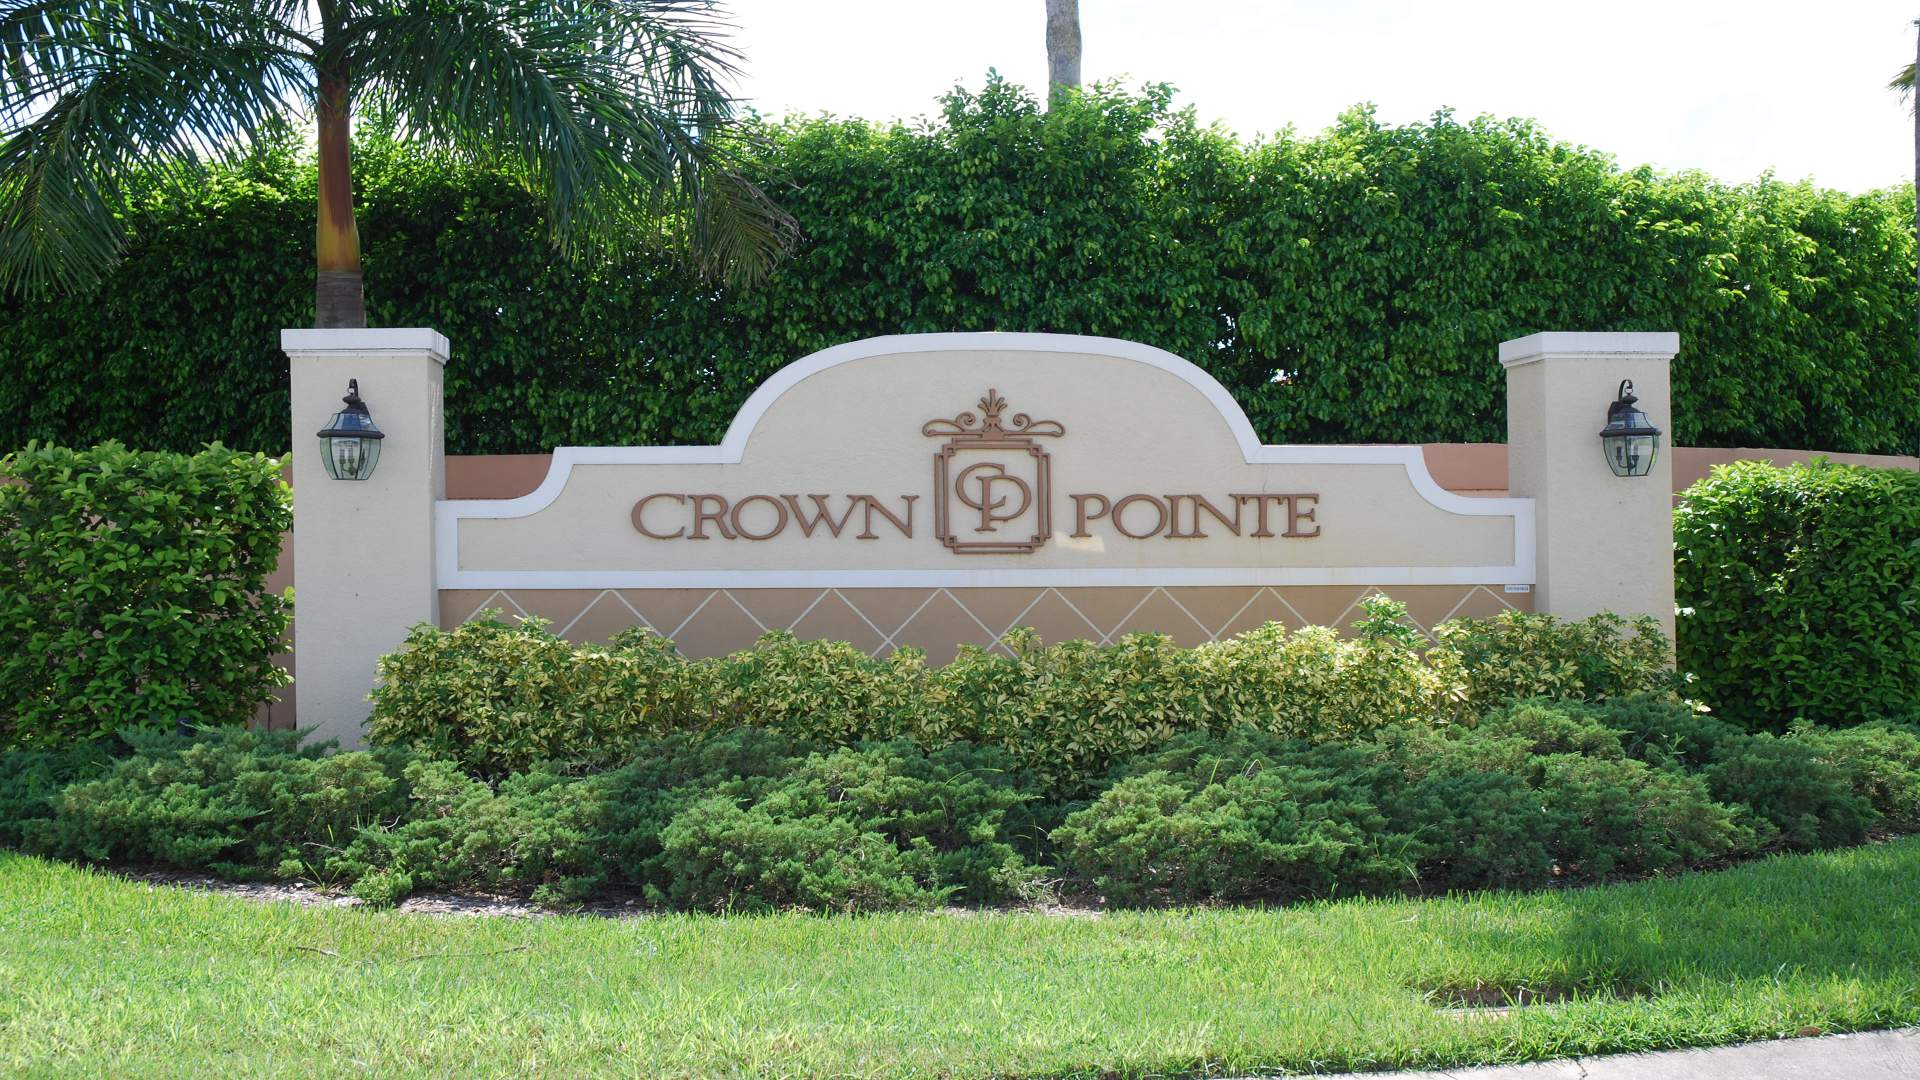 Entrance Area to the community Crown Point